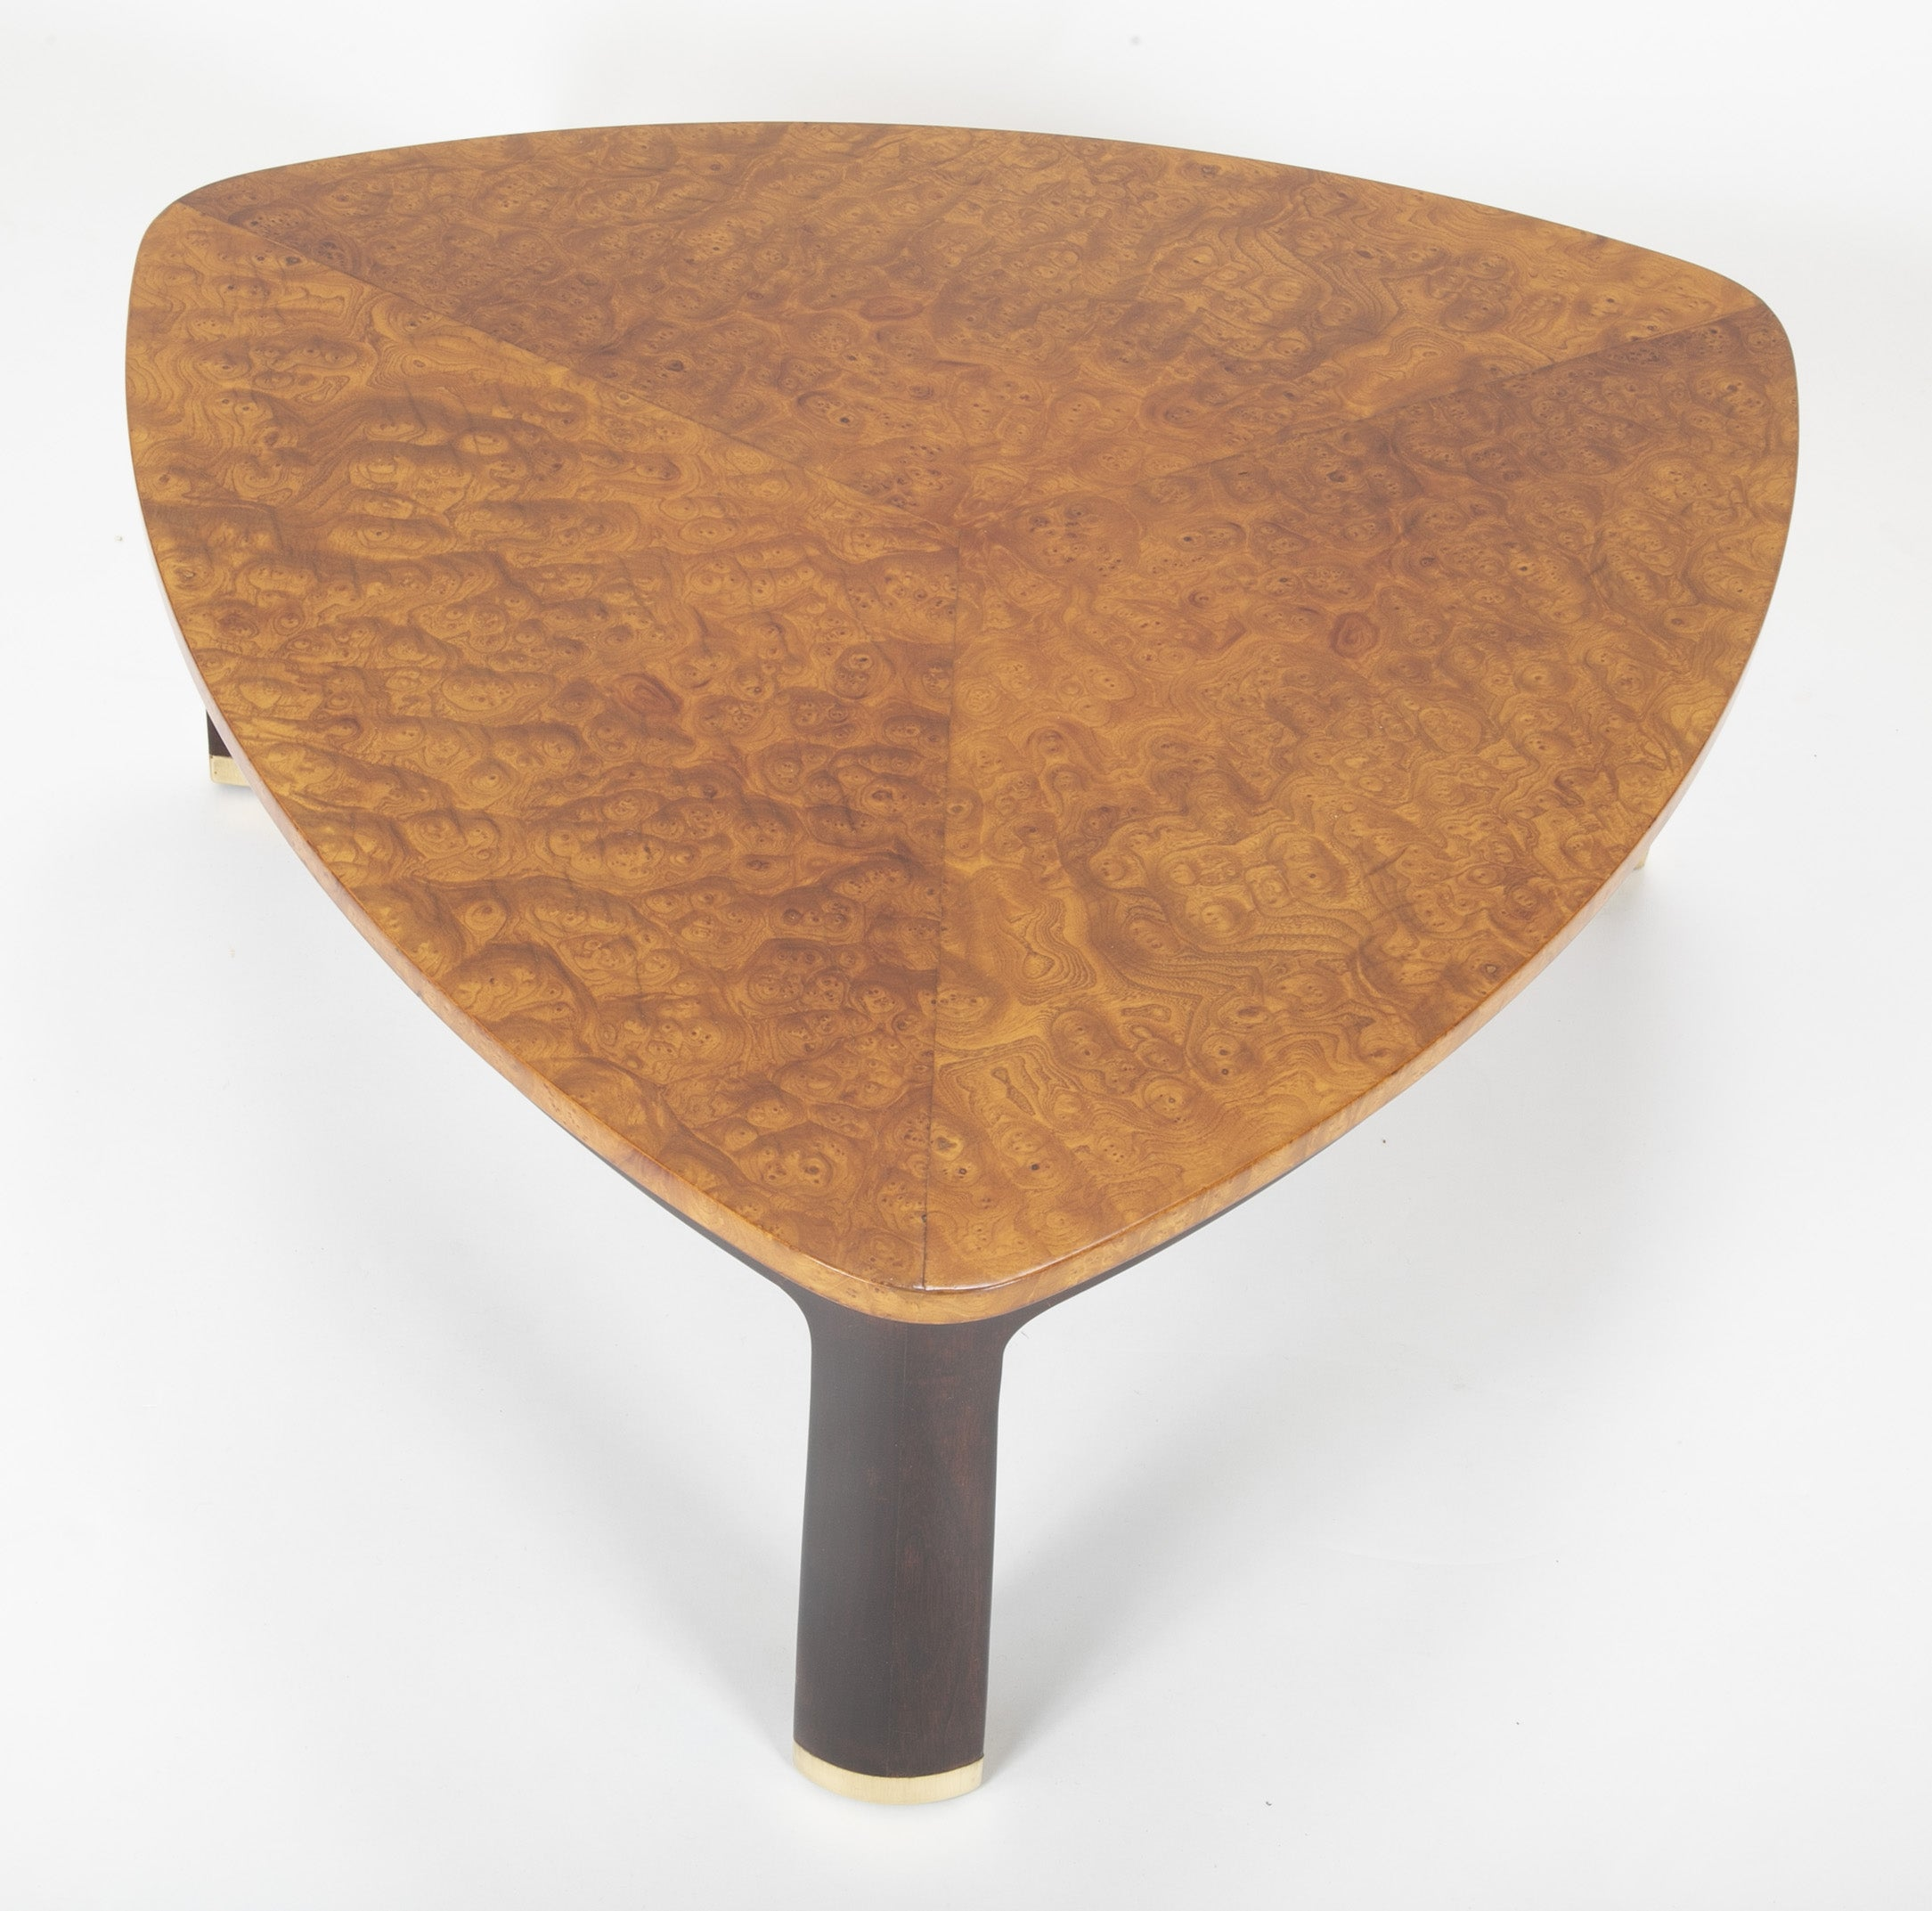 Carpathian Elm Coffee Table Designed by Edward Wormley for Dunbar